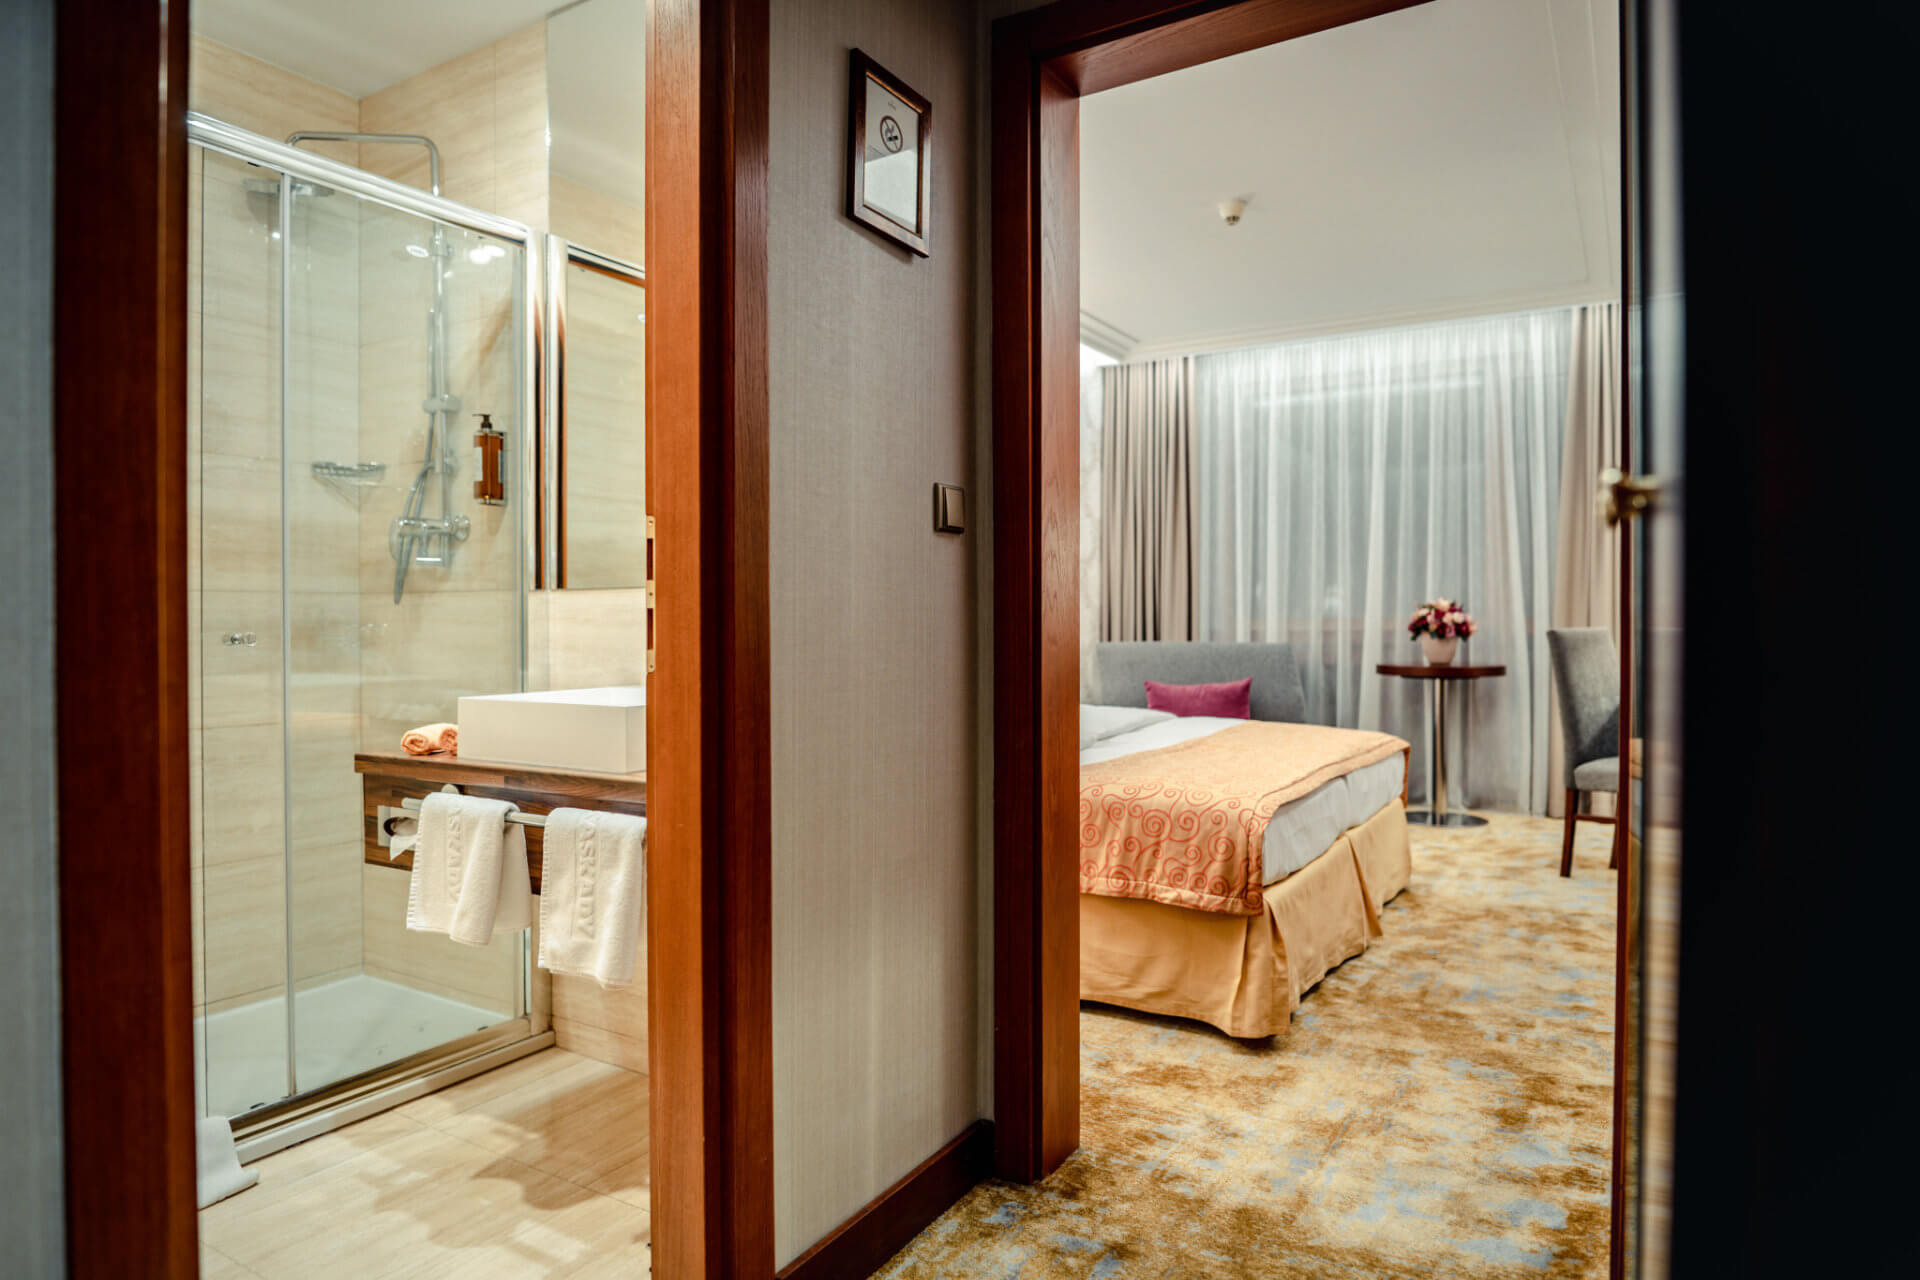 Double room in Lux design